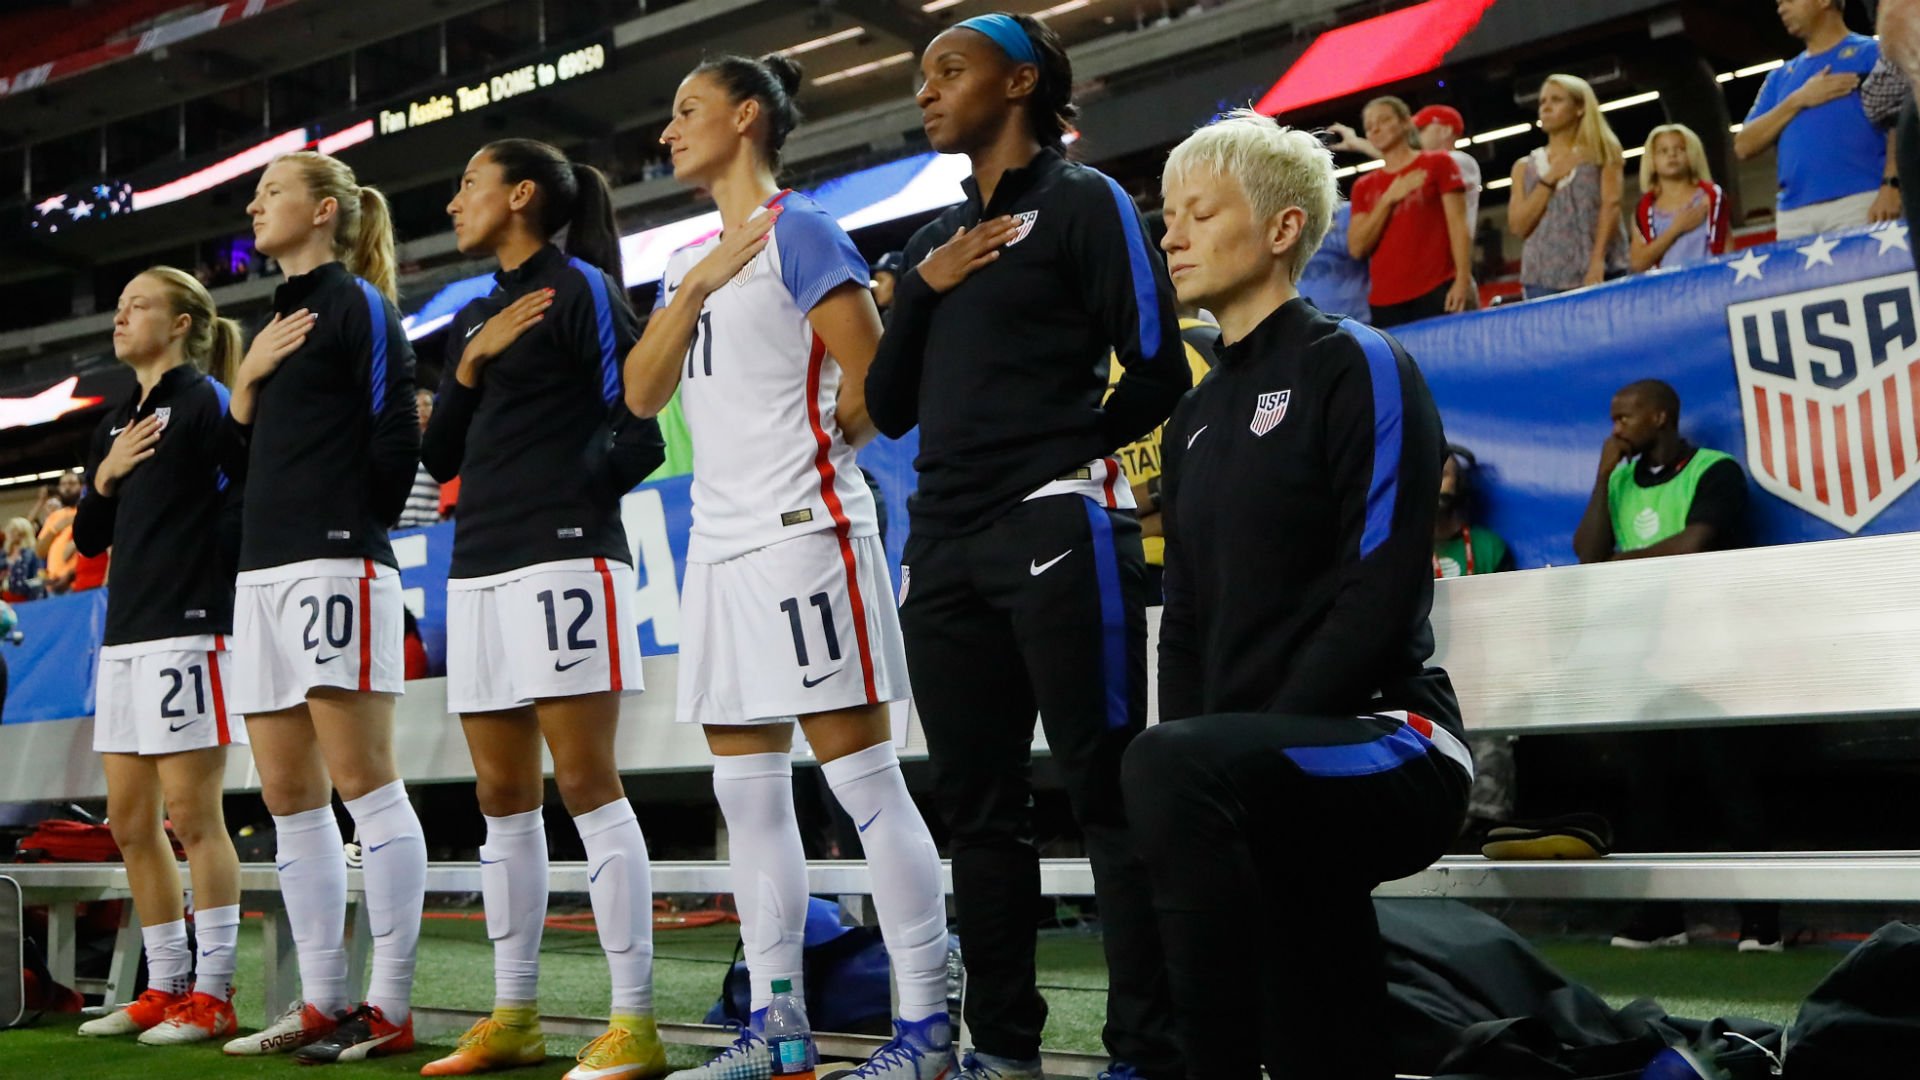 U.S. Soccer lifts ban on kneeling for anthem